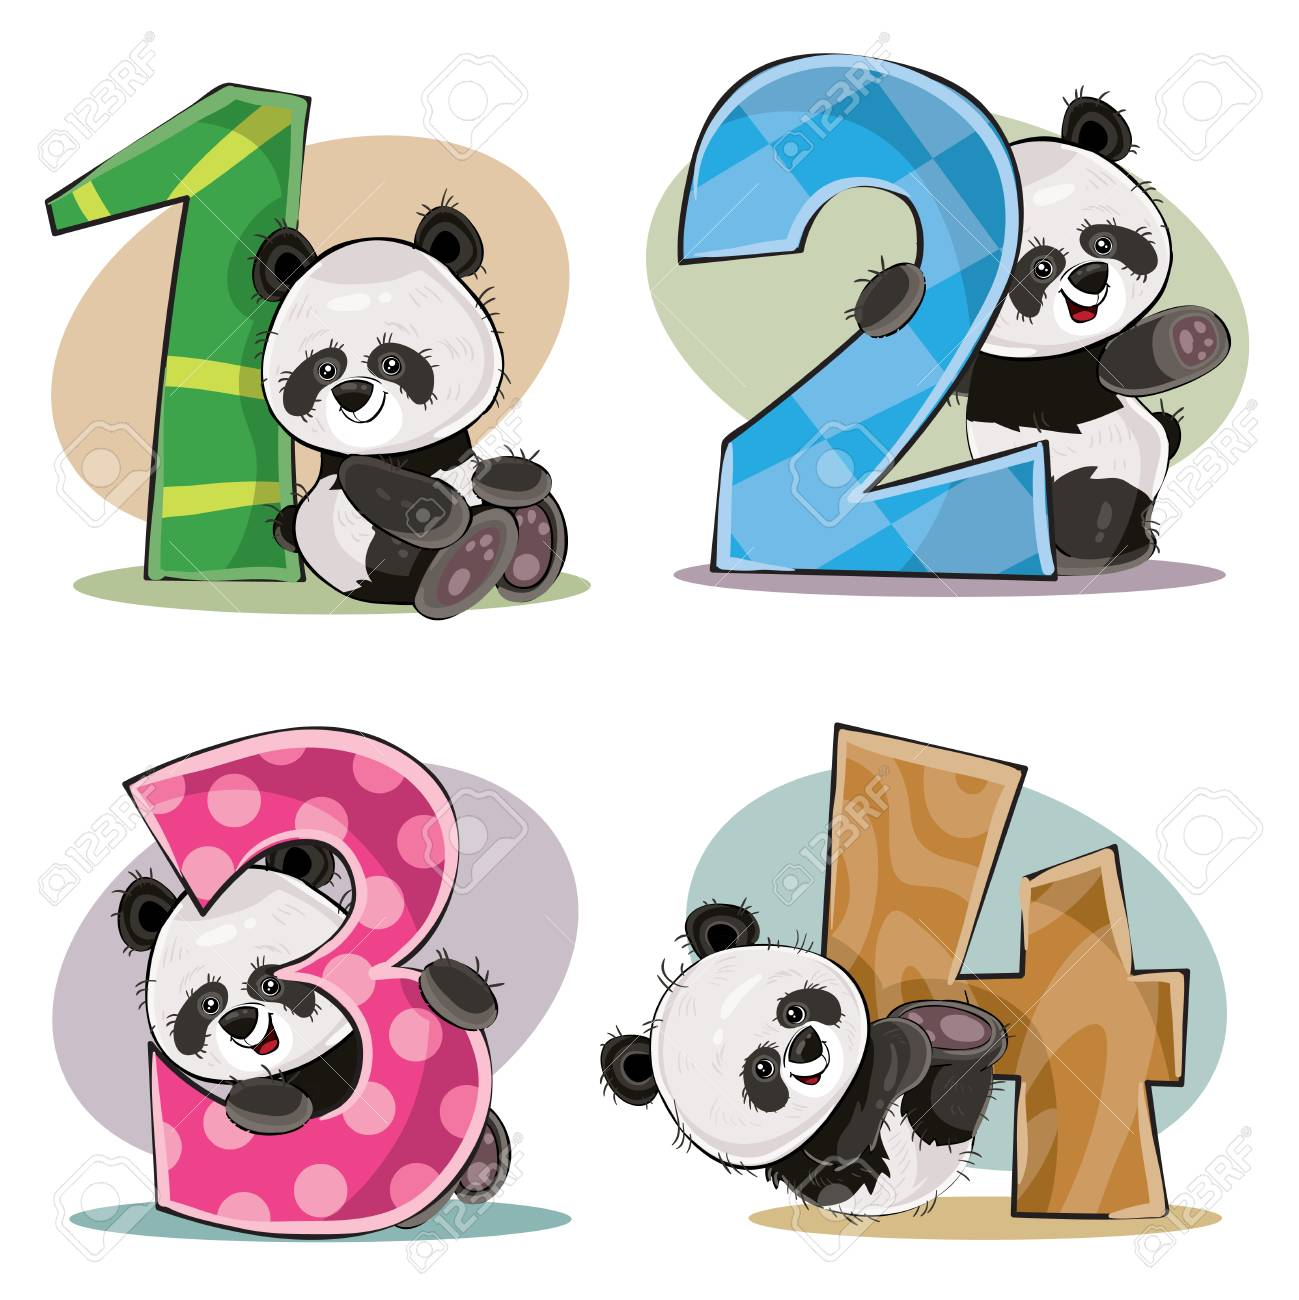 Set of cute baby panda bears with numbers vector cartoon illustration. Clipart for greeting card for kids birthday, invitation for invite, template, t-shirt print. Fun math, counting, numerals 1,2,3,4. - 94714233